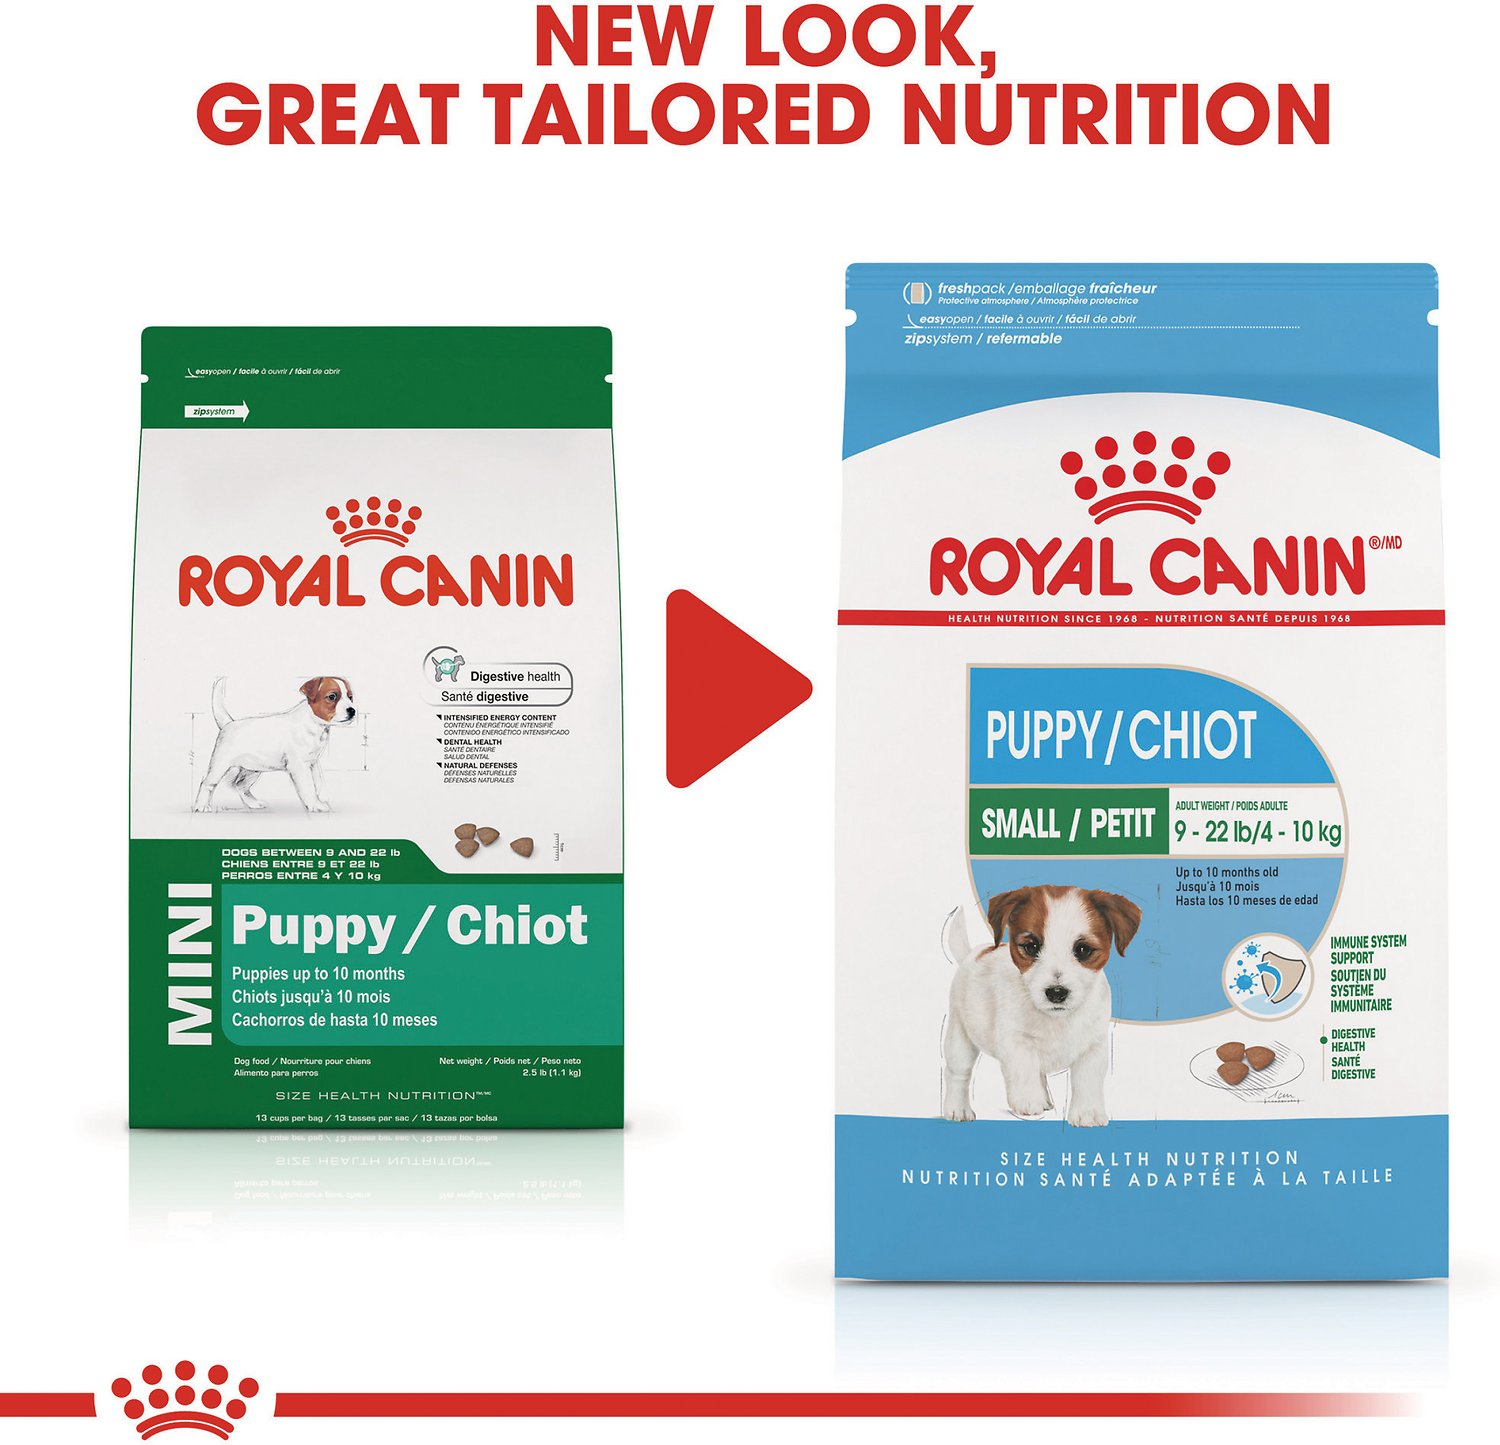 Royal canin mini puppy dry dog food 13 lb bag chewy video geenschuldenfo Gallery